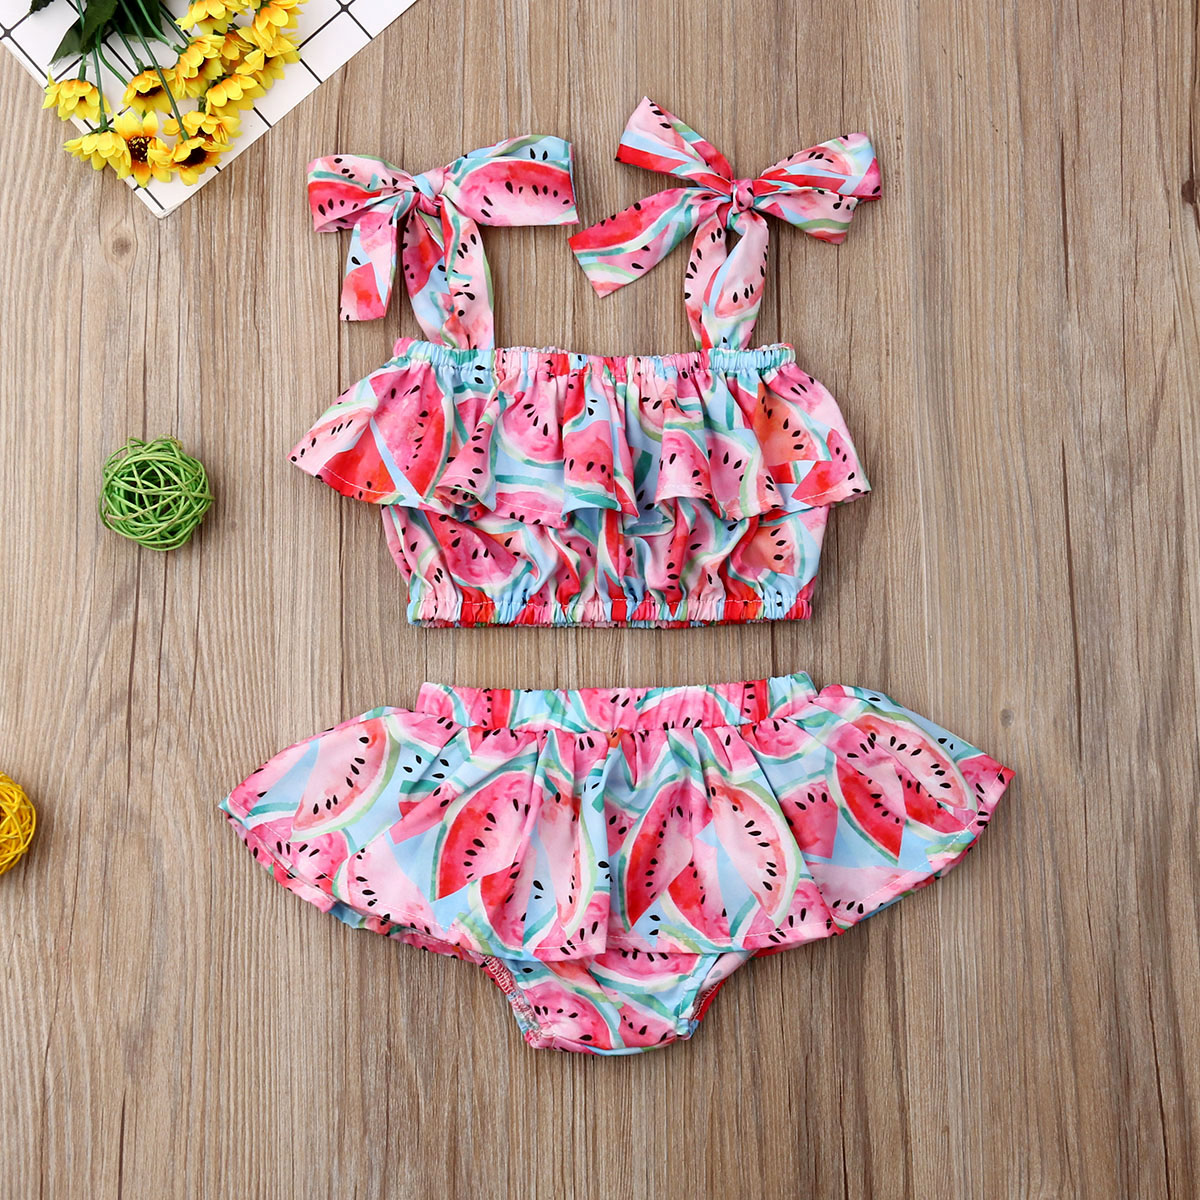 Emmababy Newest Fashion Newborn Baby Girl Clothes Watermelon Print Strap Tops Short Pants 2Pcs Outfits Summer Clothes